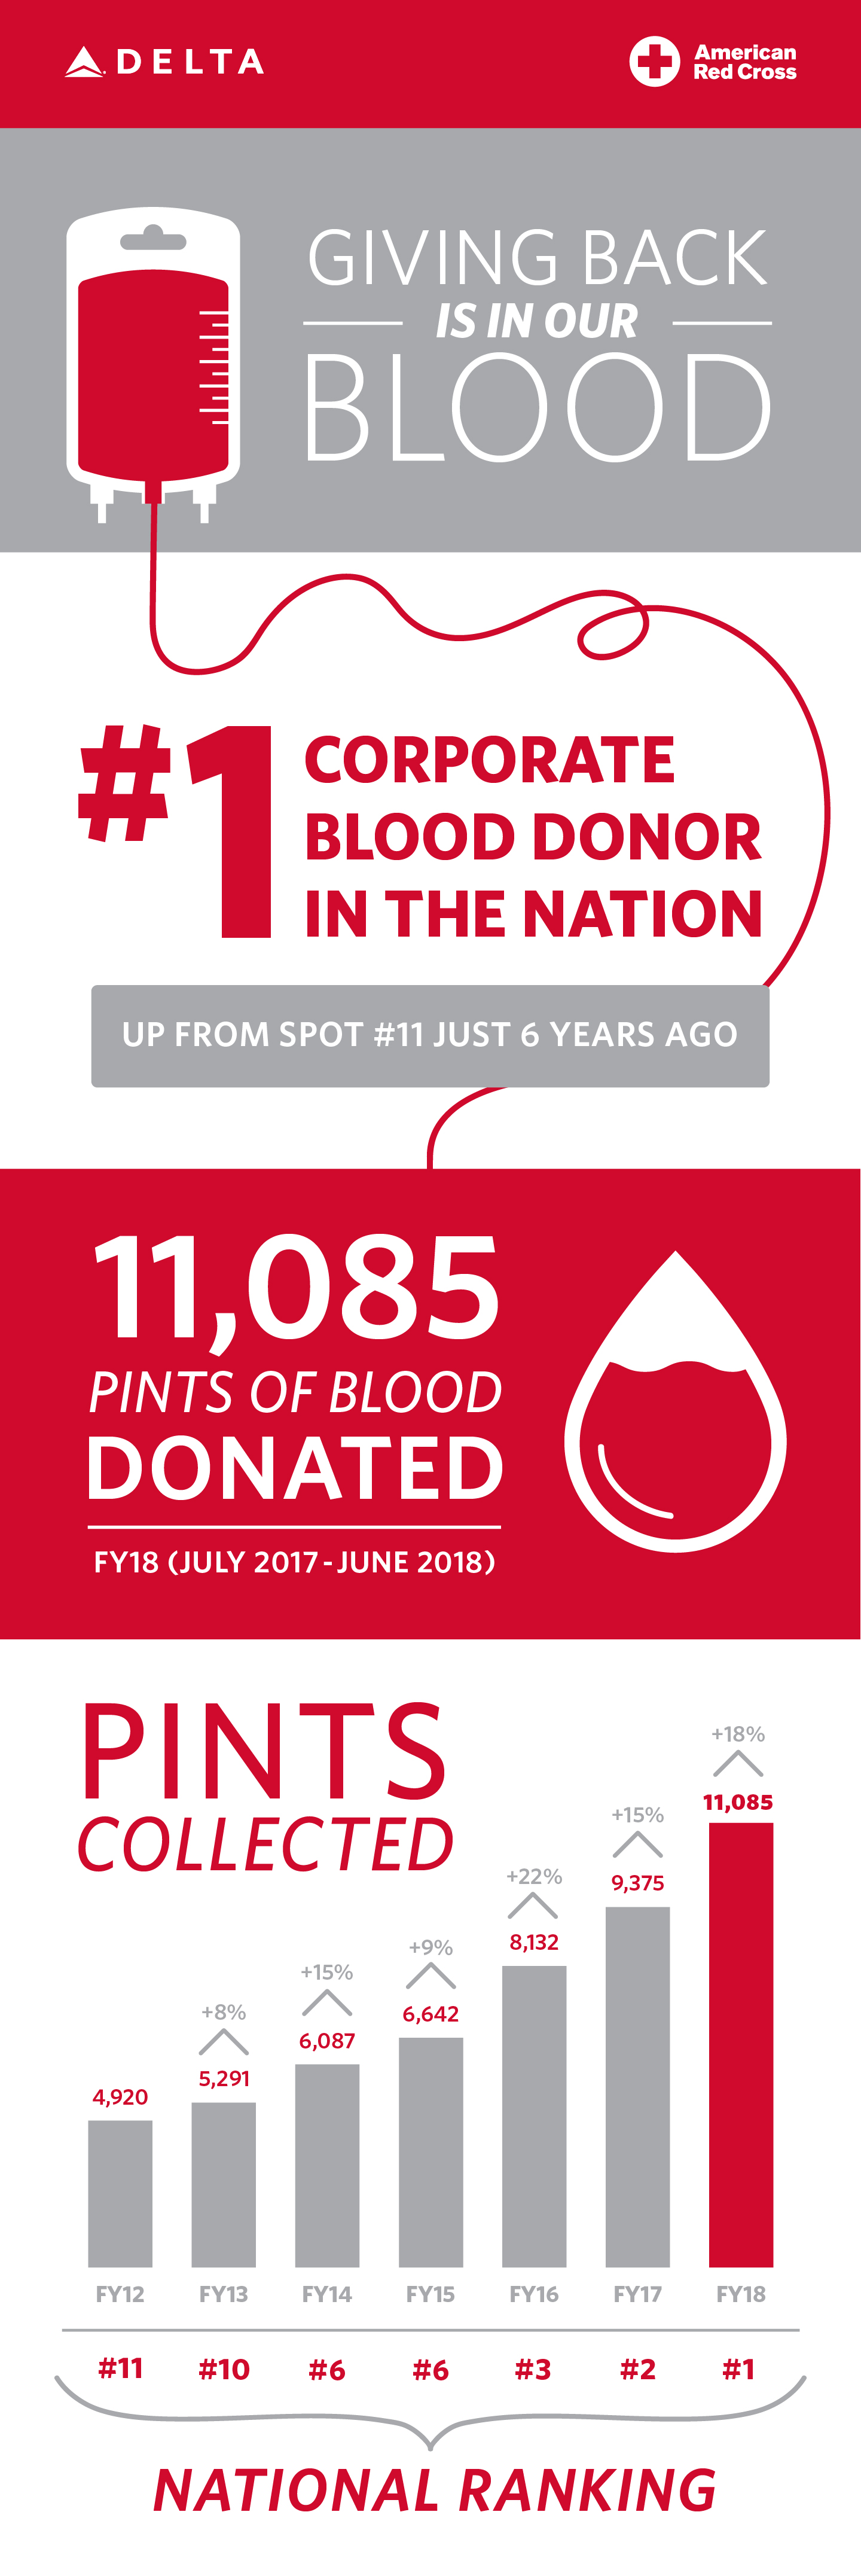 Delta Becomes No 1 Corporate Blood Donor For The American